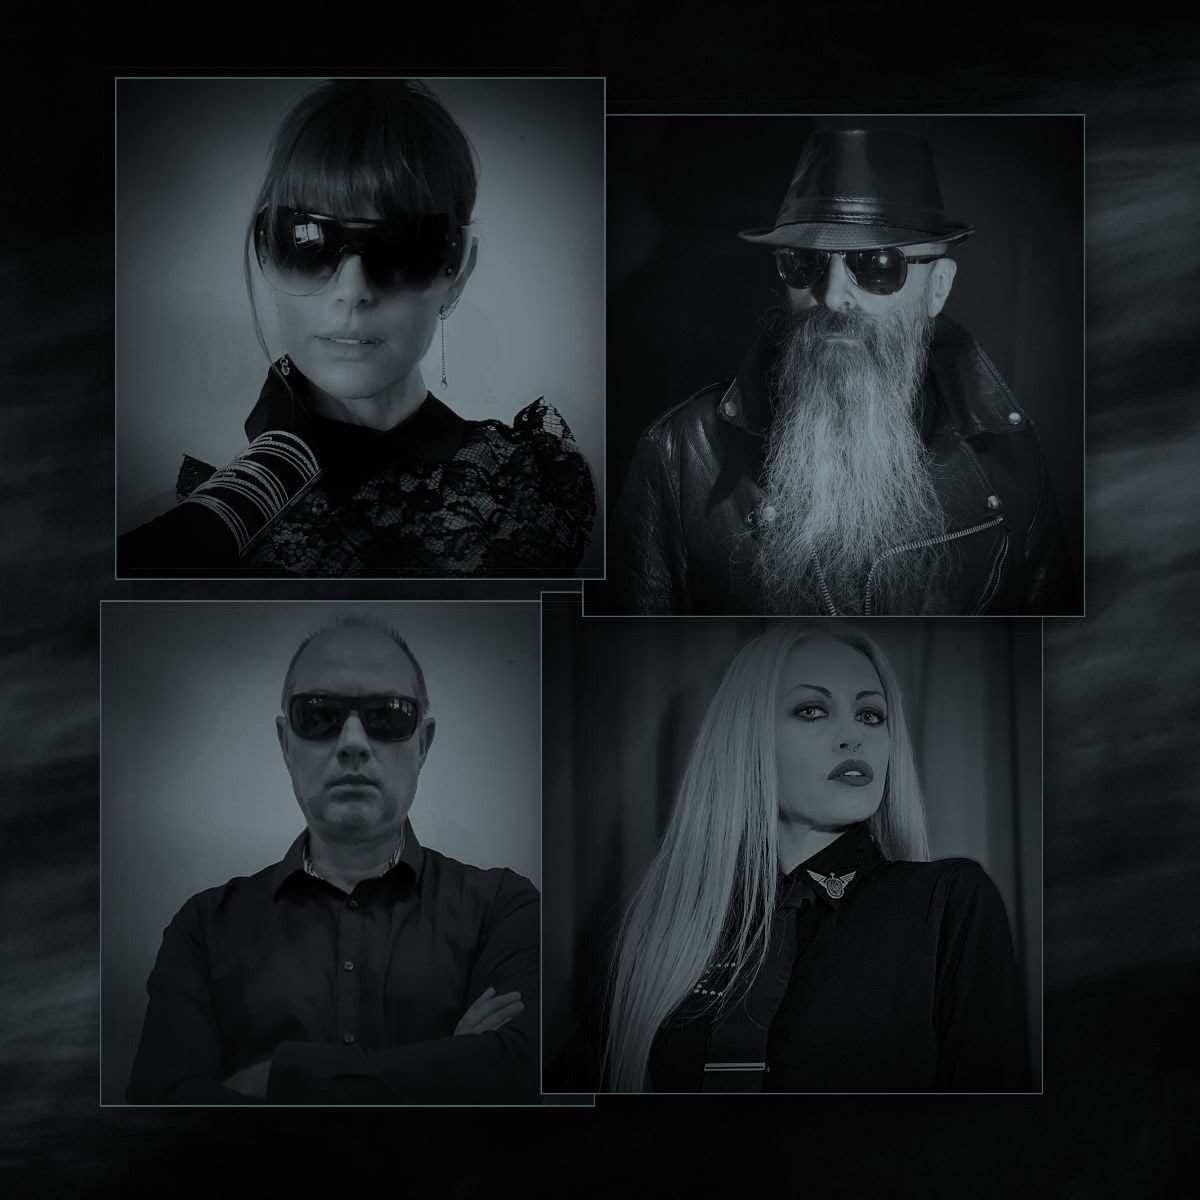 Kirlian Camera release video for upcoming single 'The 8th President'